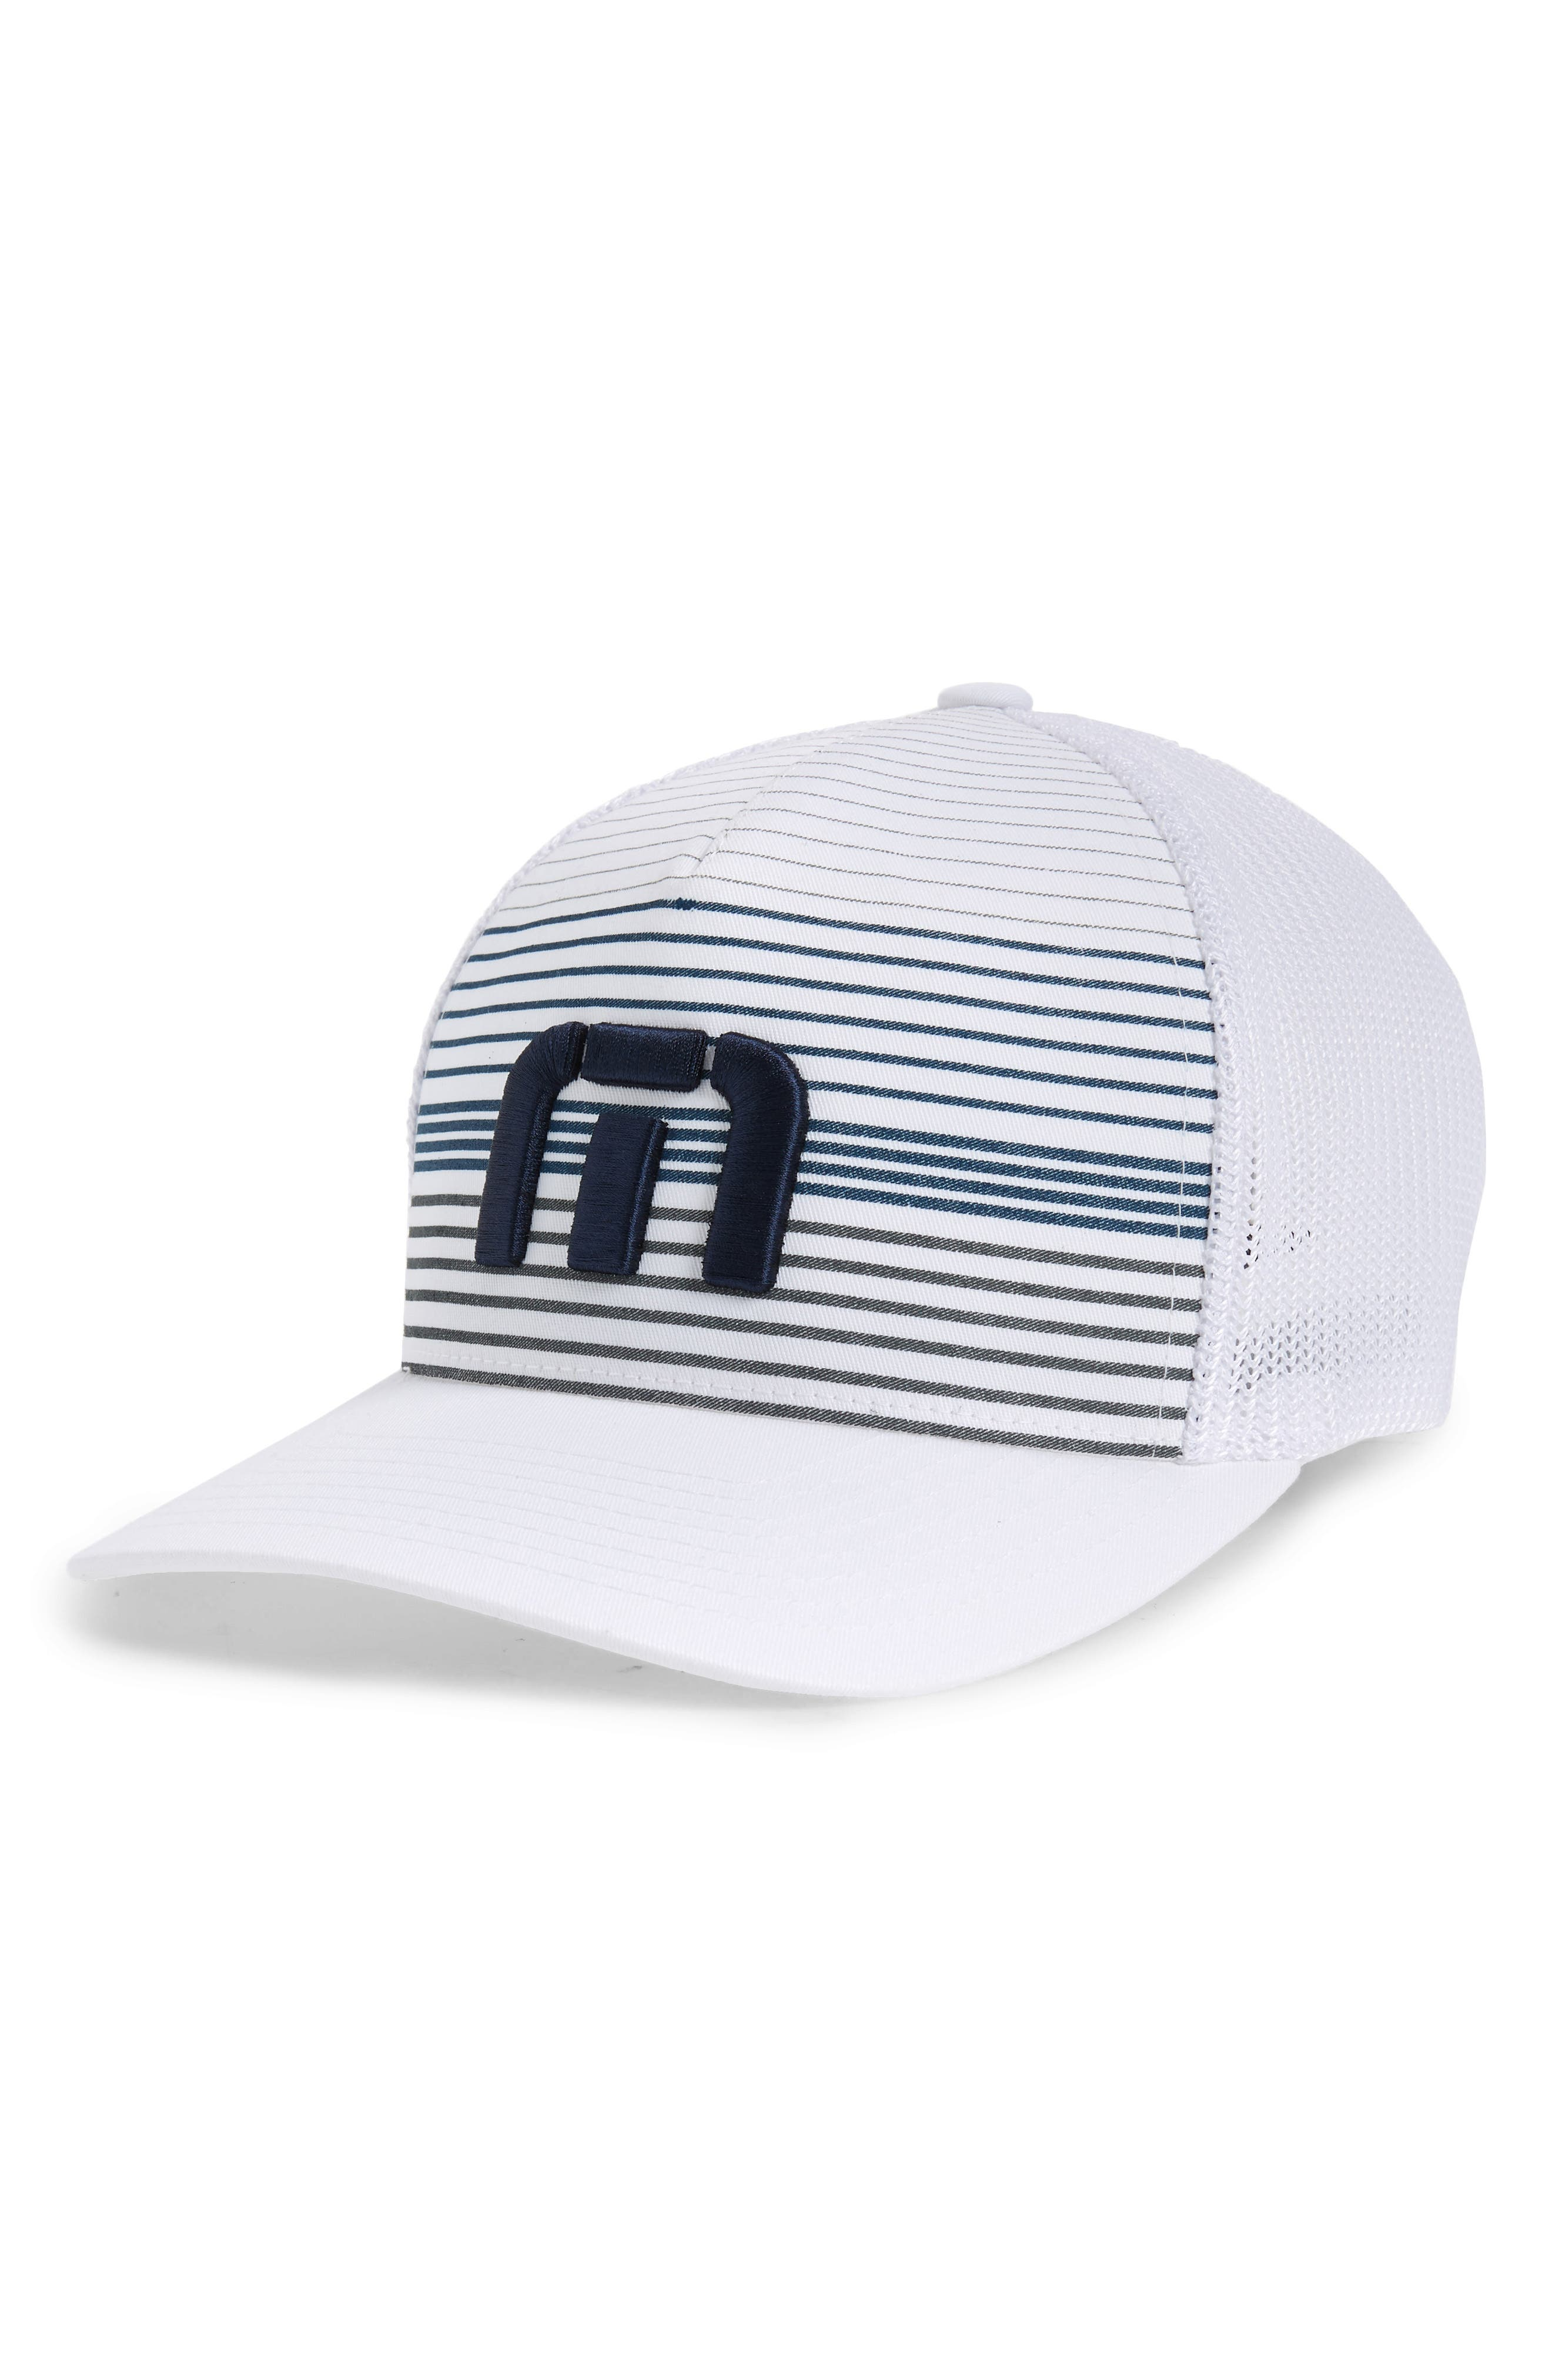 official photos 110b1 7d1a6 ... coupon code travis mathew the executive trucker hat 18ae7 bcd48